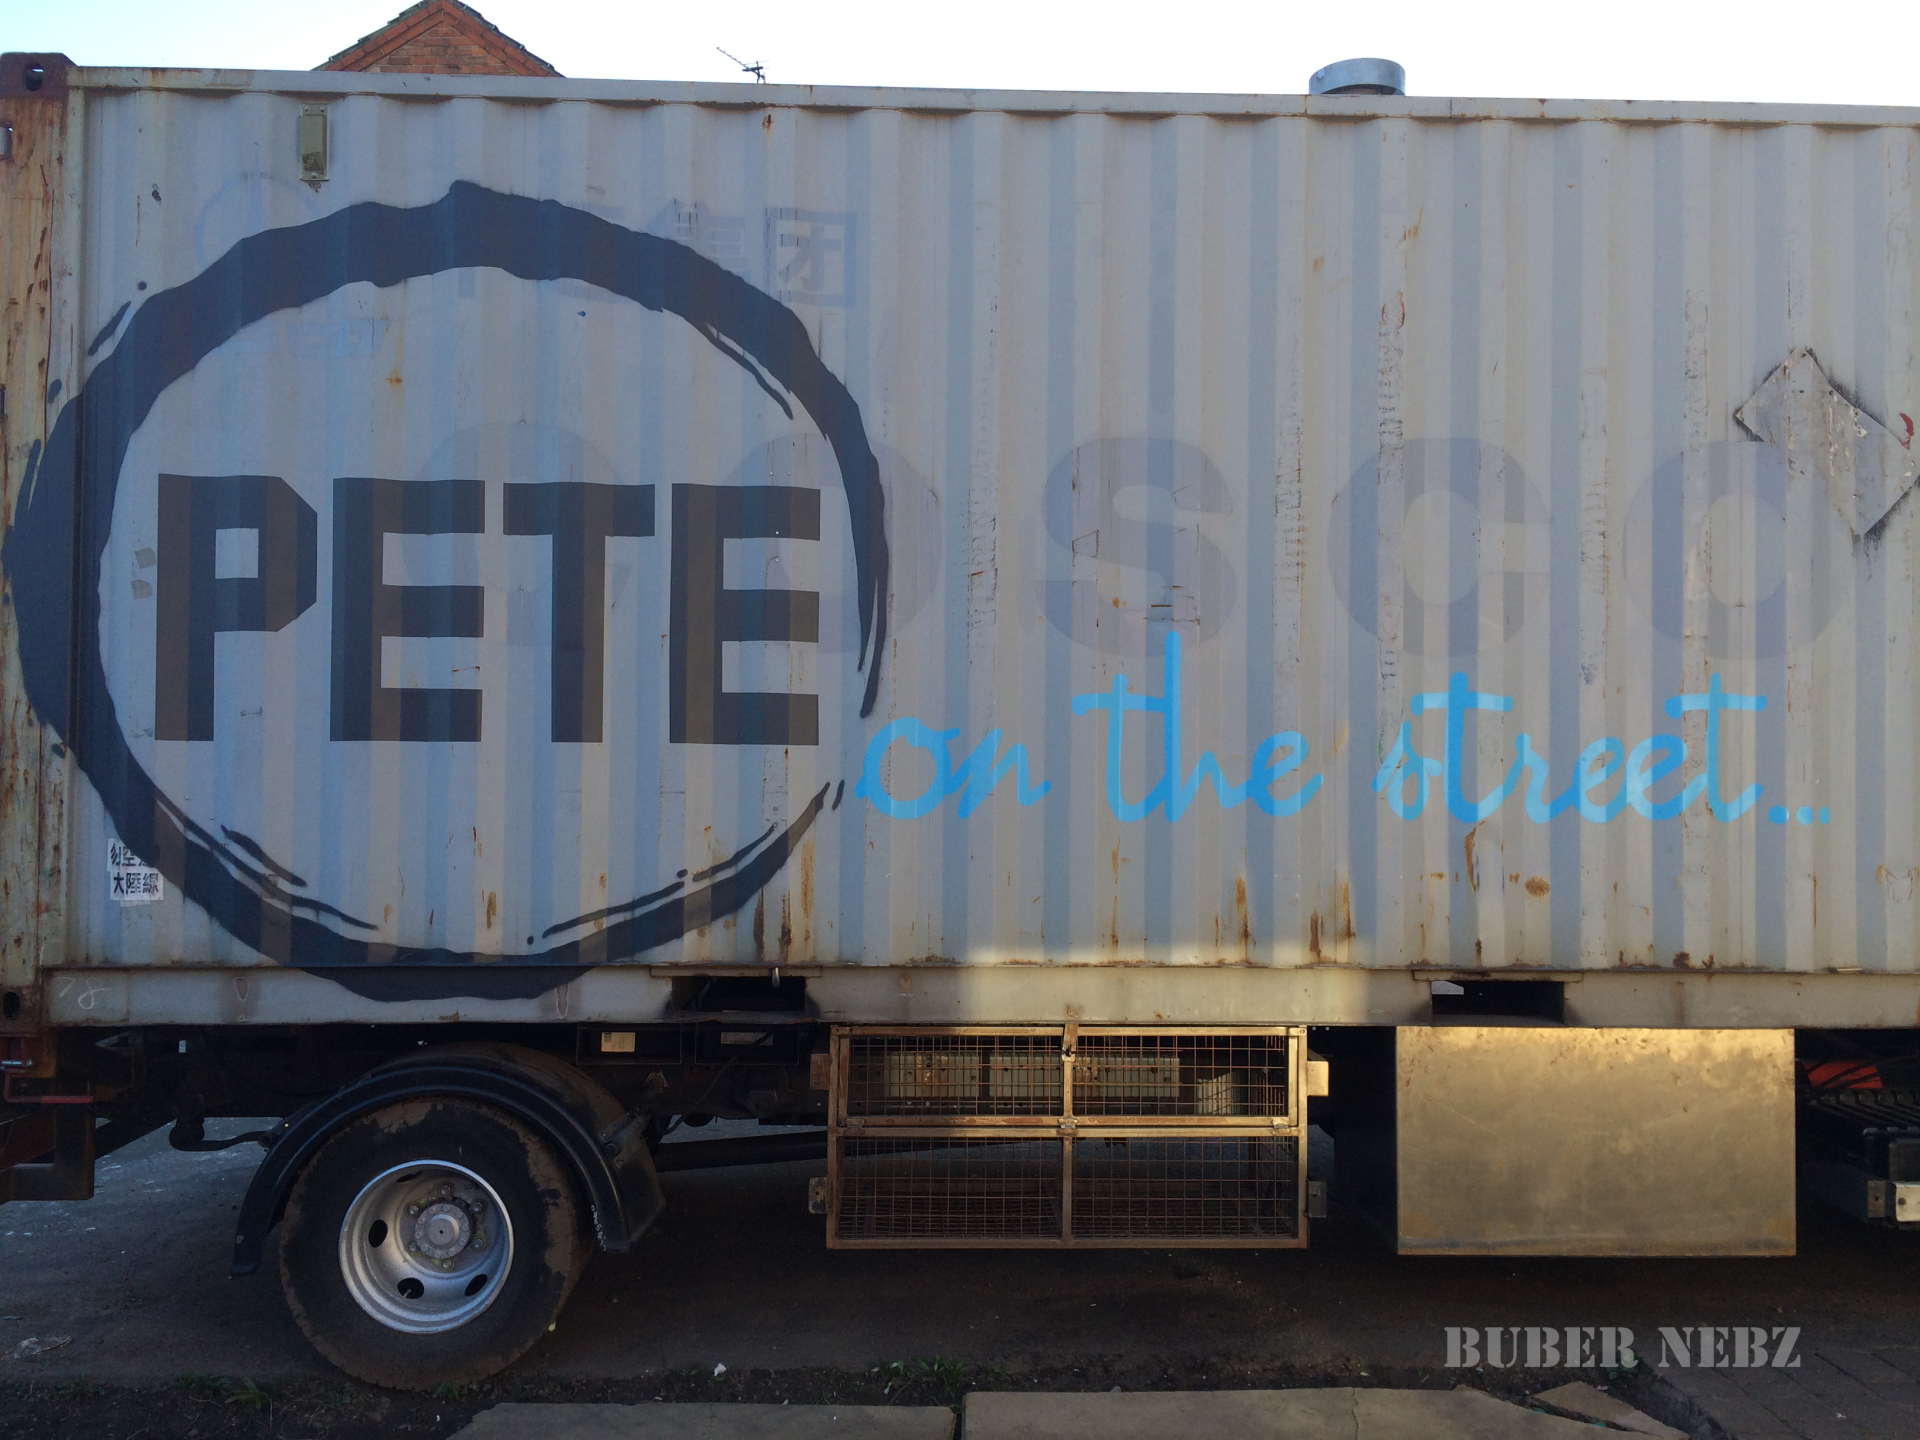 Pete On The Street Truck